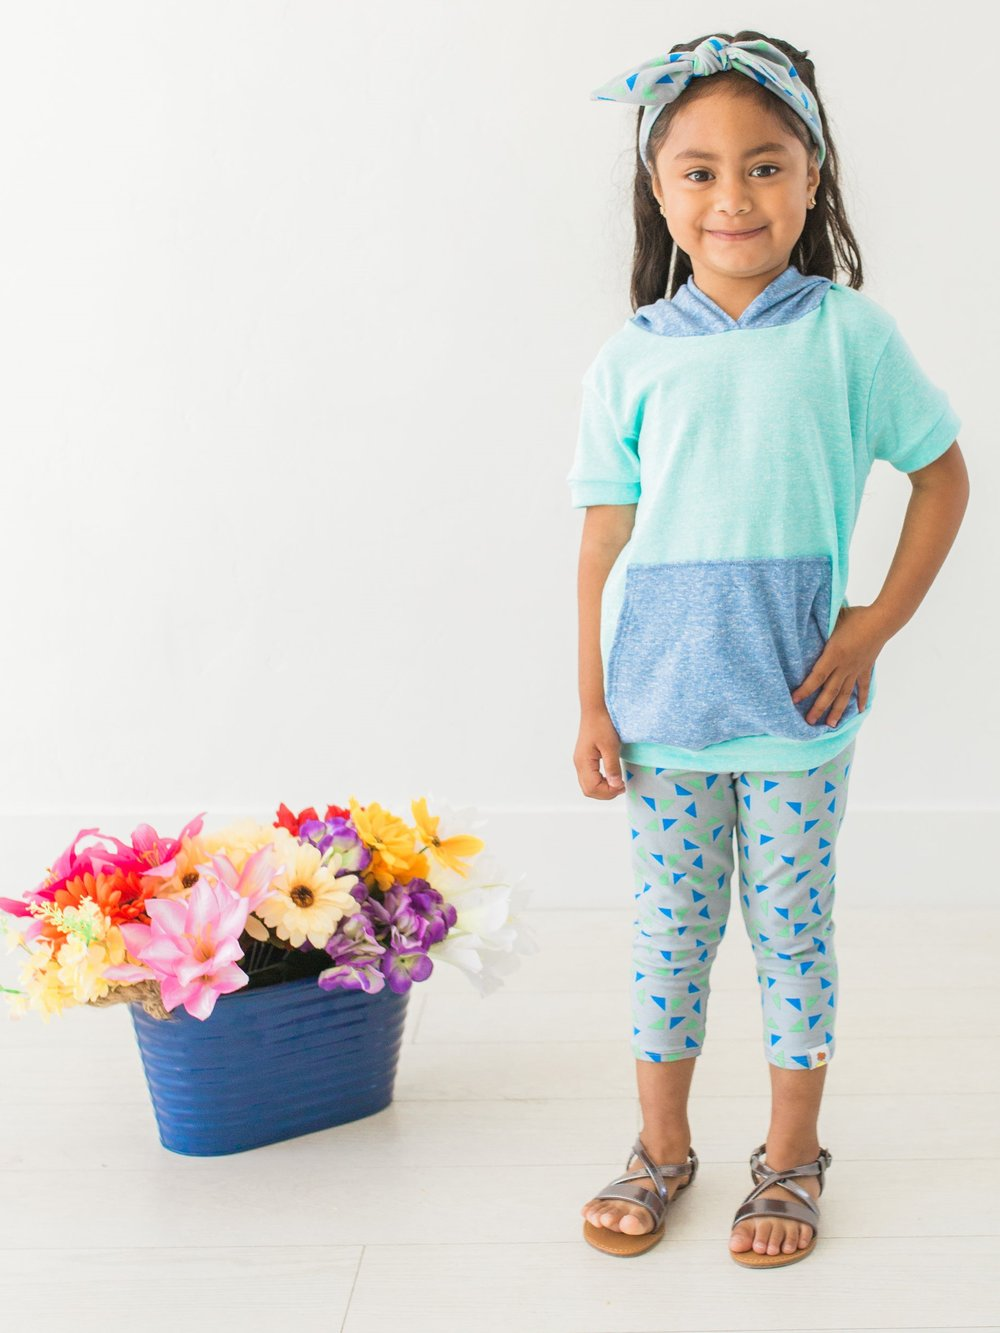 PARADISE KIDS CLOTHING-0300.jpg